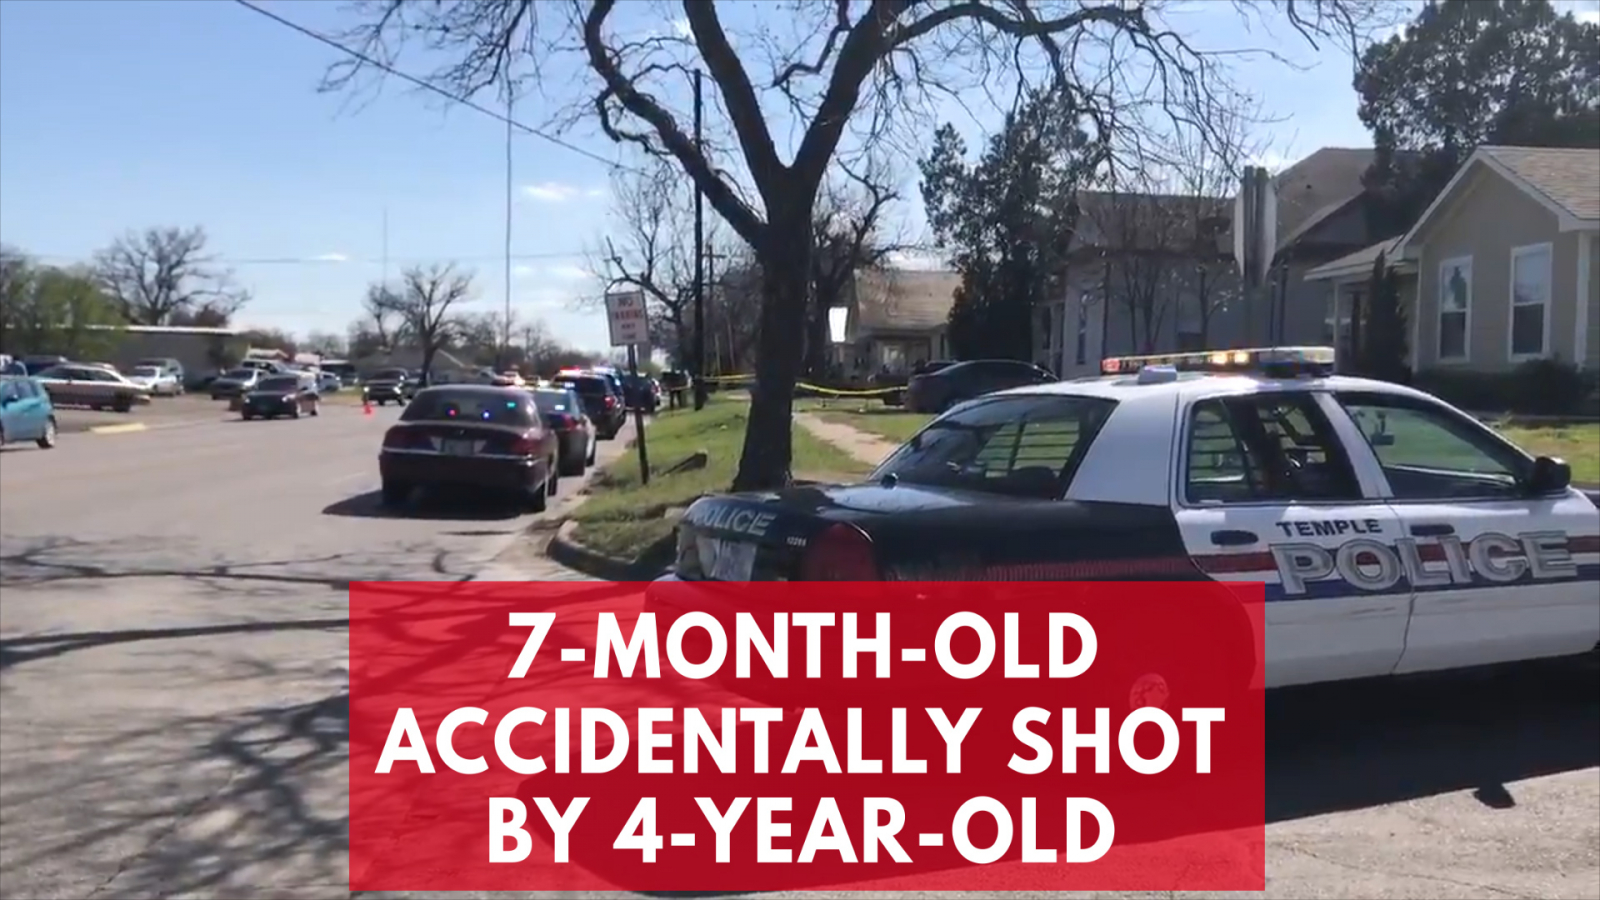 texas-4-year-old-accidentally-shoots-7-month-old-baby